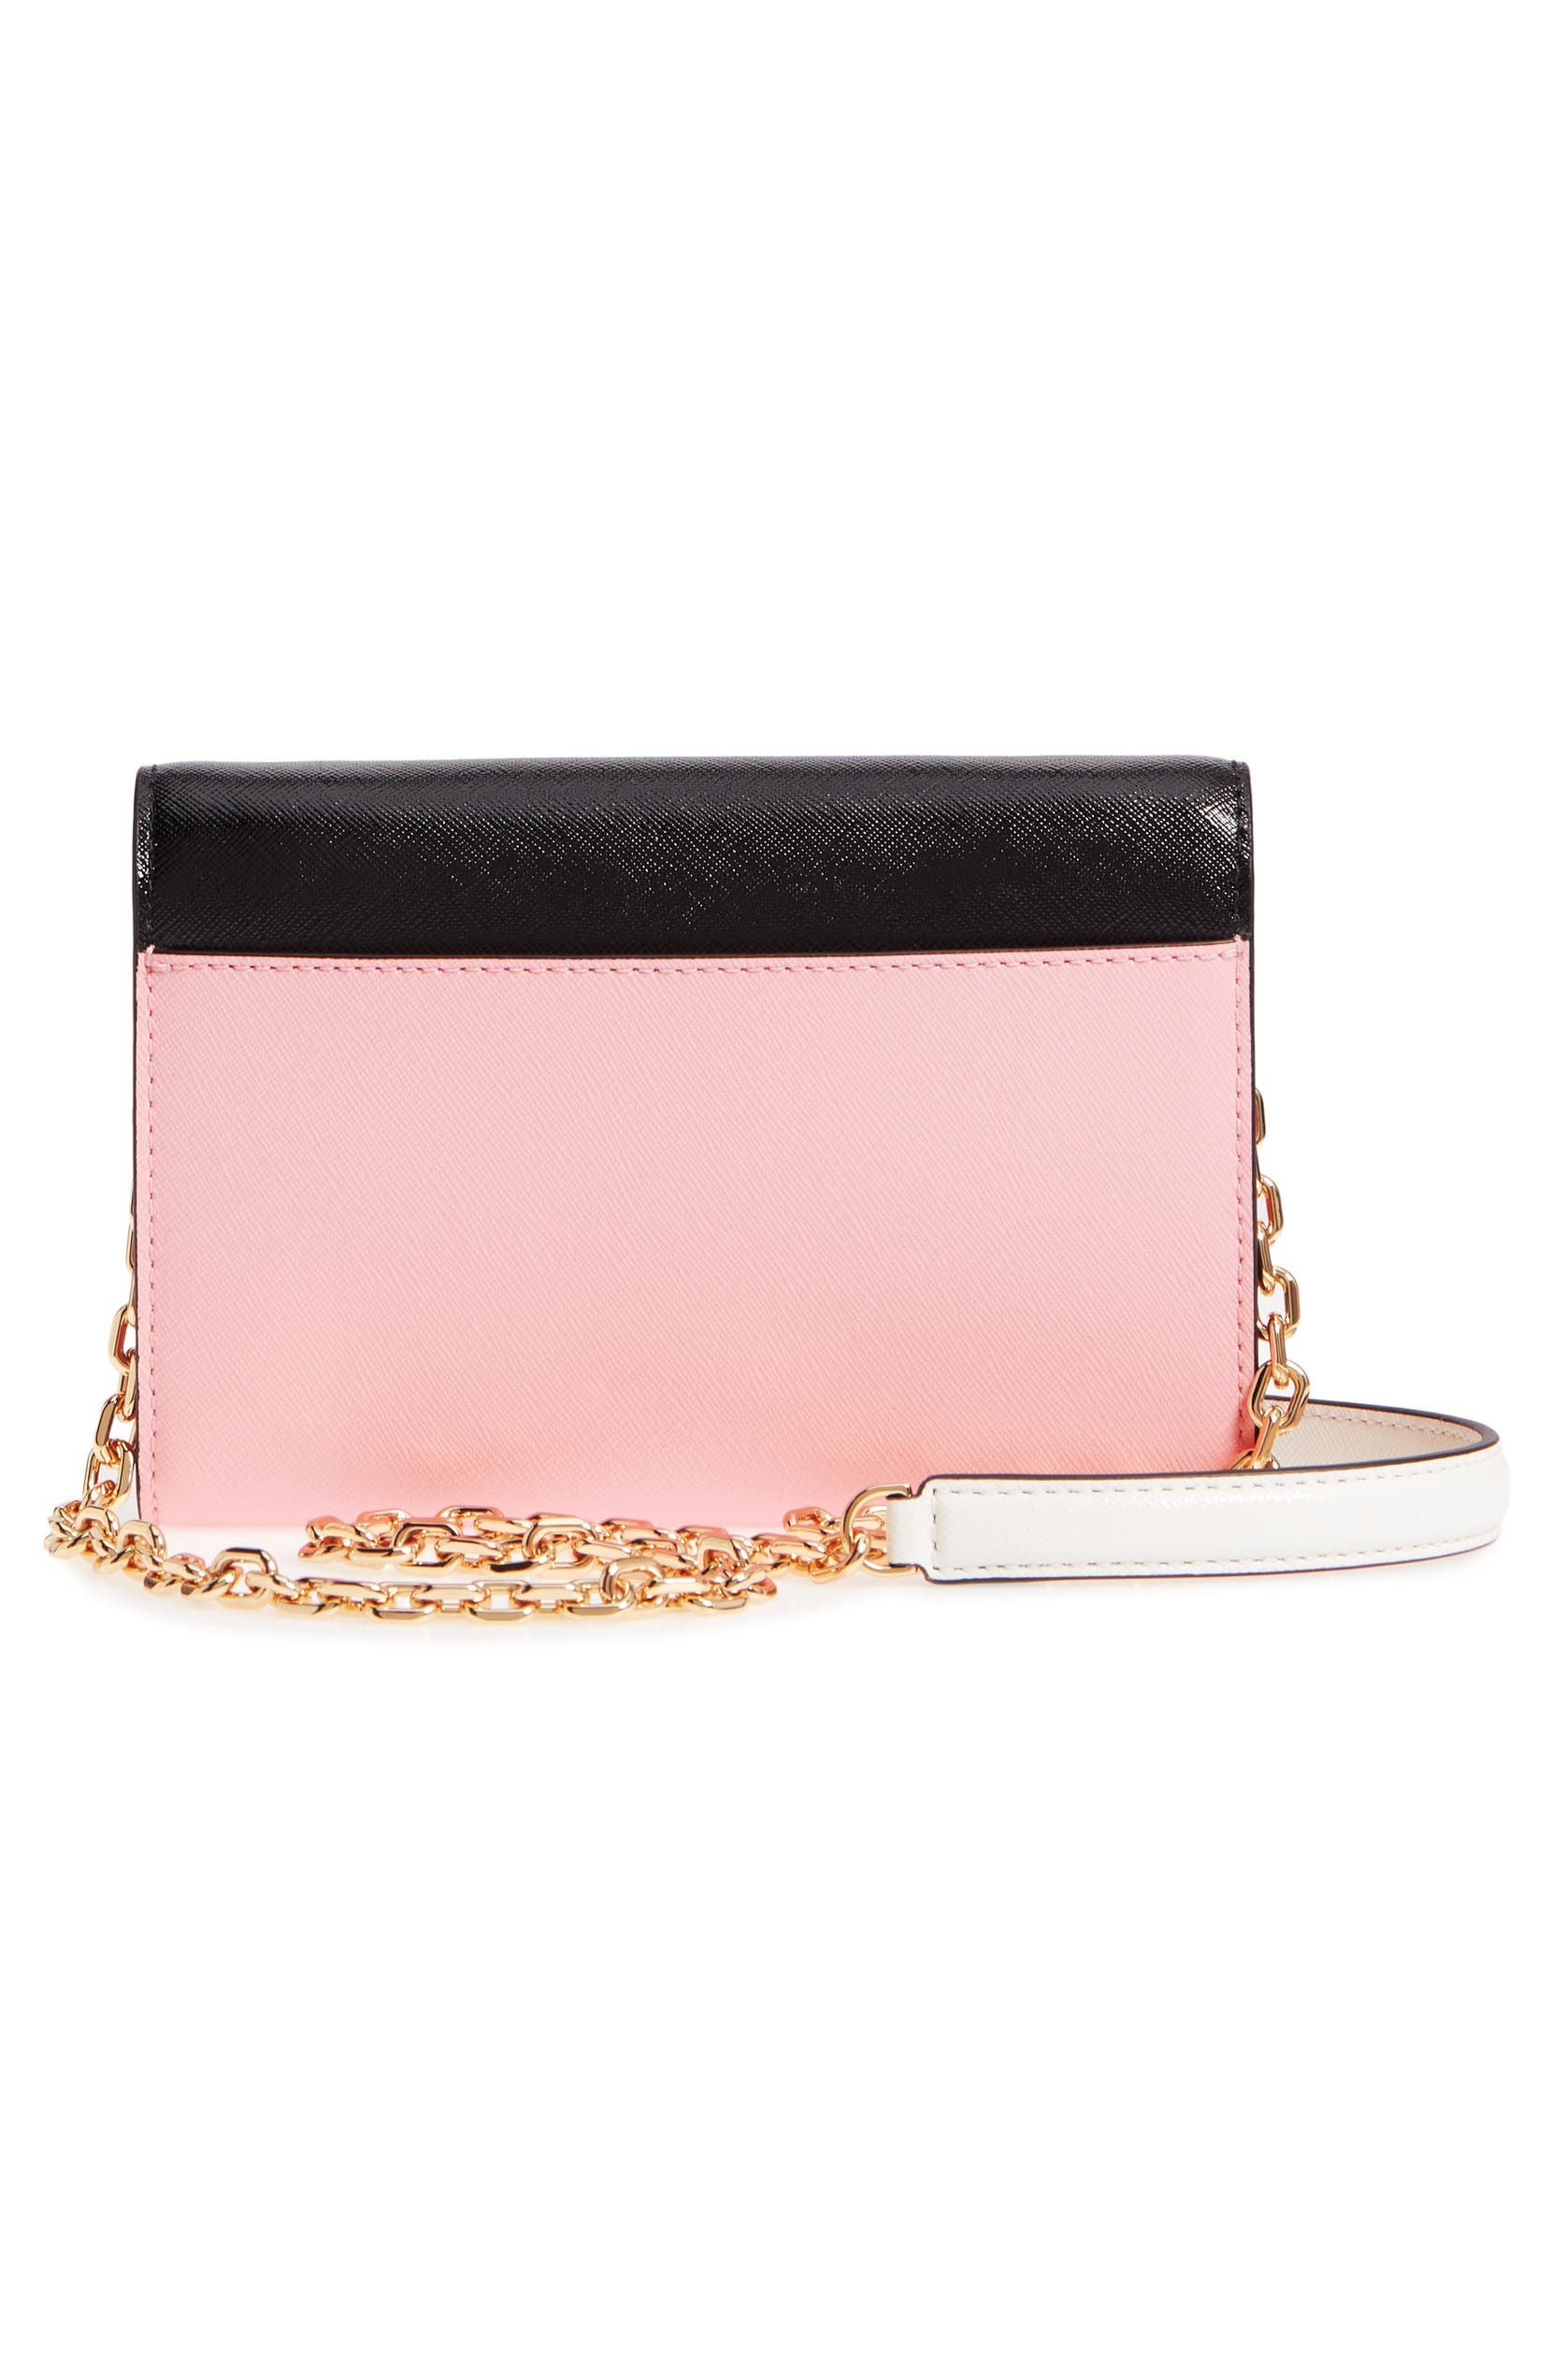 a4ed9e2445a1 MARC JACOBS Snapshot Leather Wallet on a Chain | Nordstrom